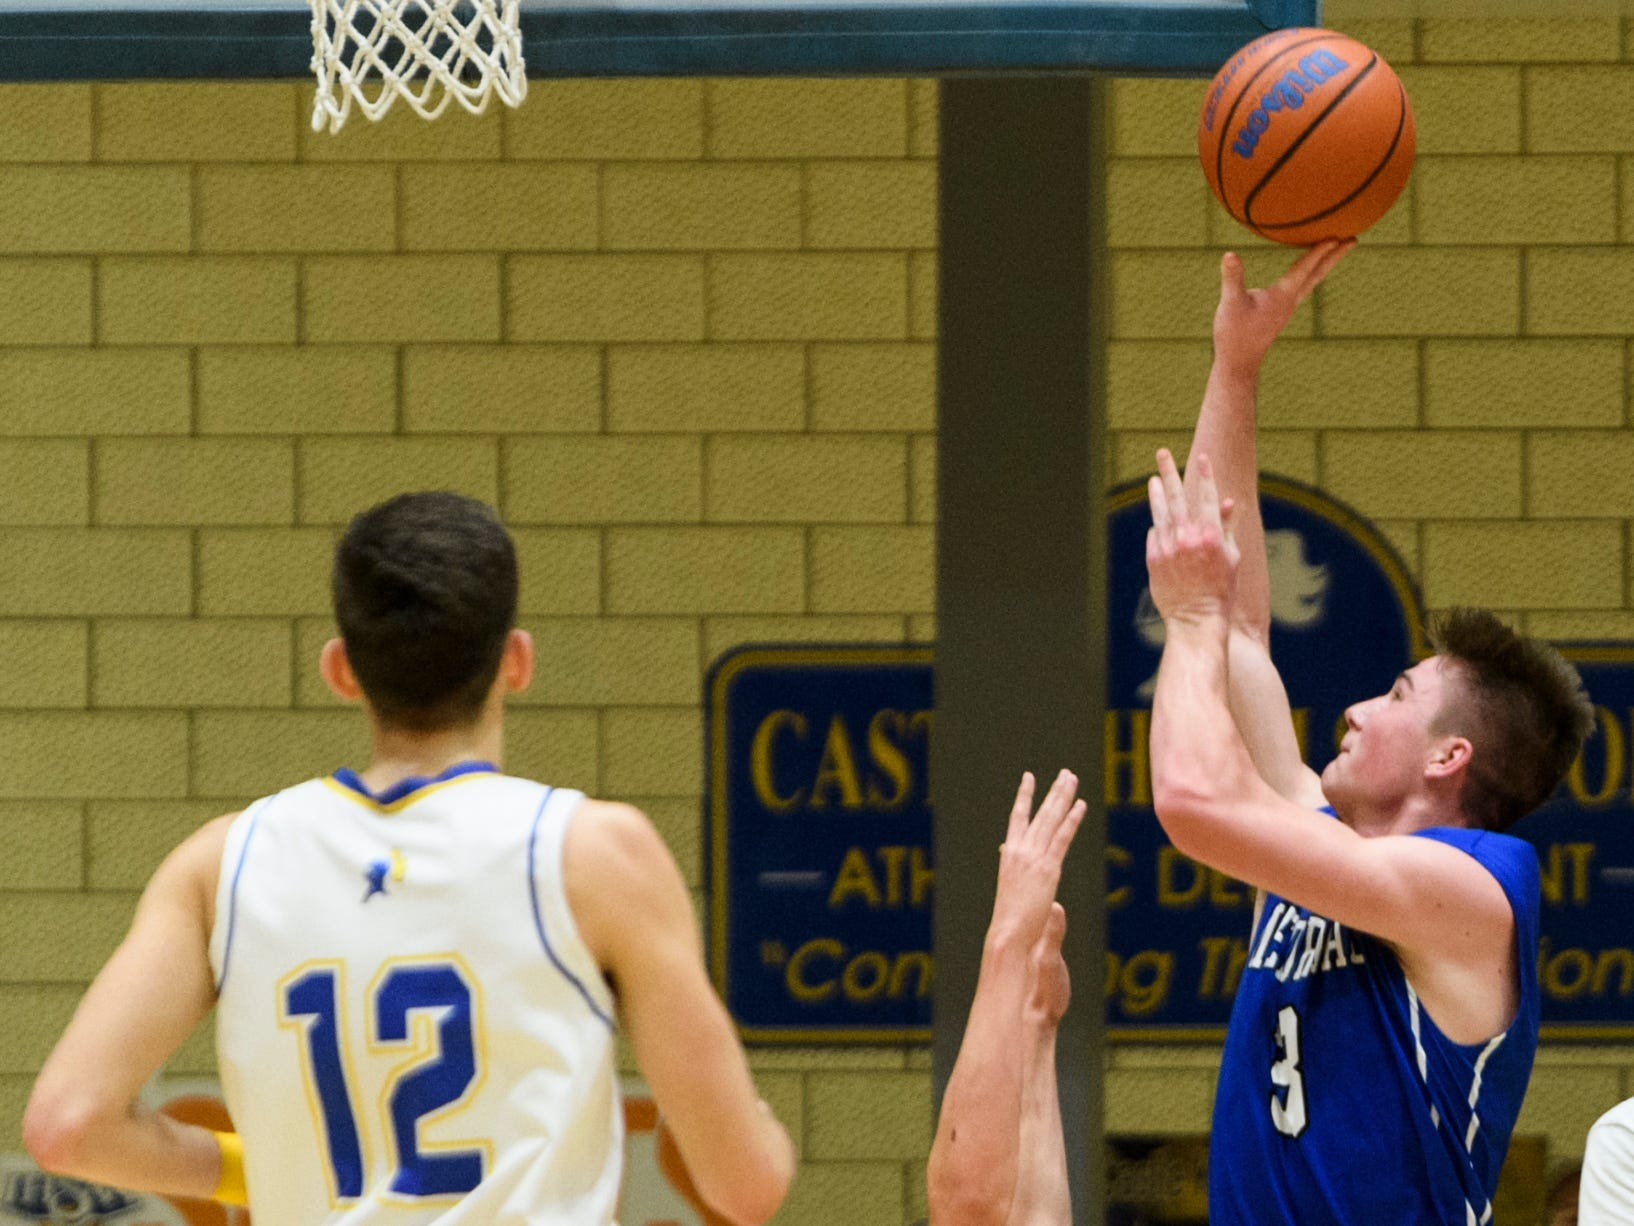 Memorial's Branson Combs (3) knocks over Castle's Bob Nunge (20) while attempting a shot during the second quarter at Castle High School in Newburgh, Ind., Friday, Jan. 4, 2019. The Knights defeated the Tigers, 72-43.